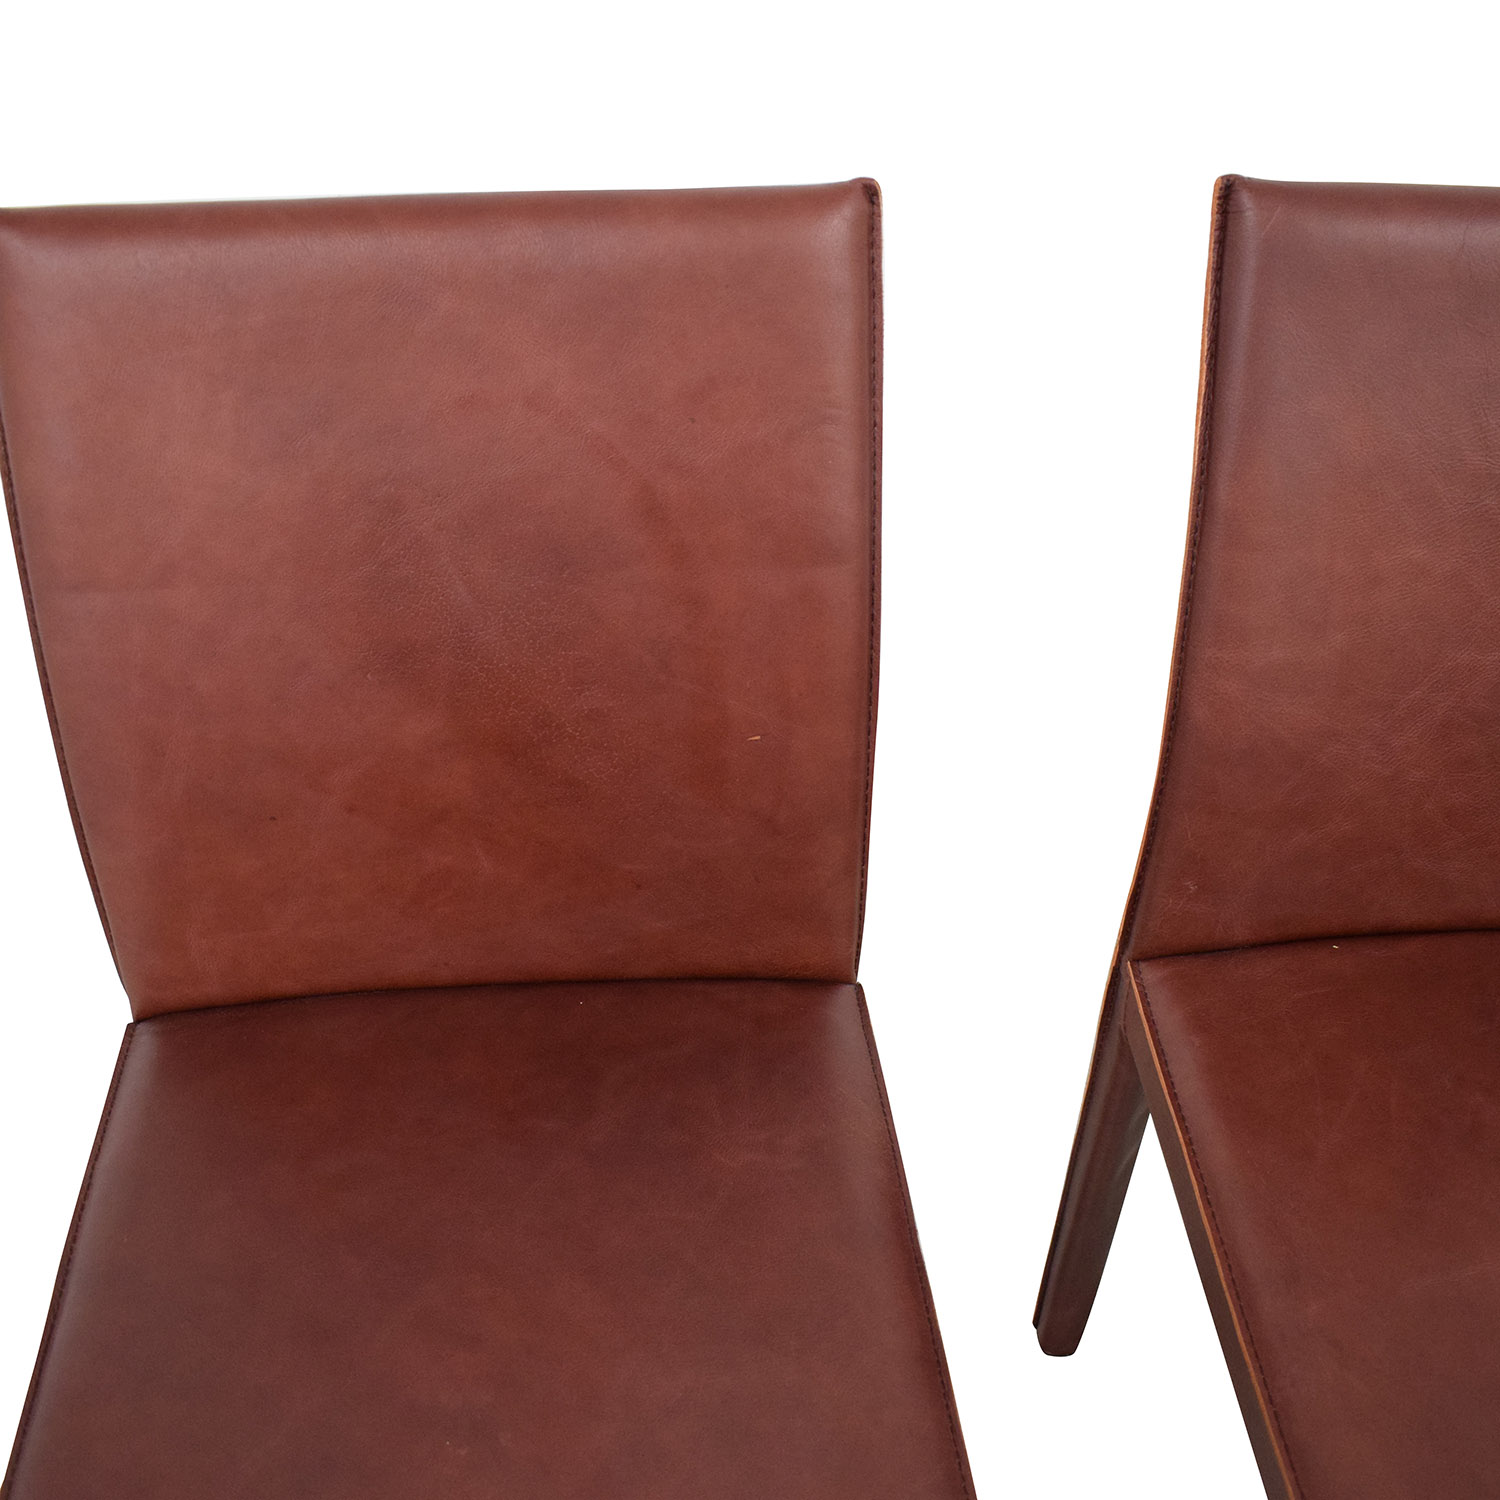 shop Crate & Barrel Folio Merlot Dining Chairs Crate & Barrel Chairs